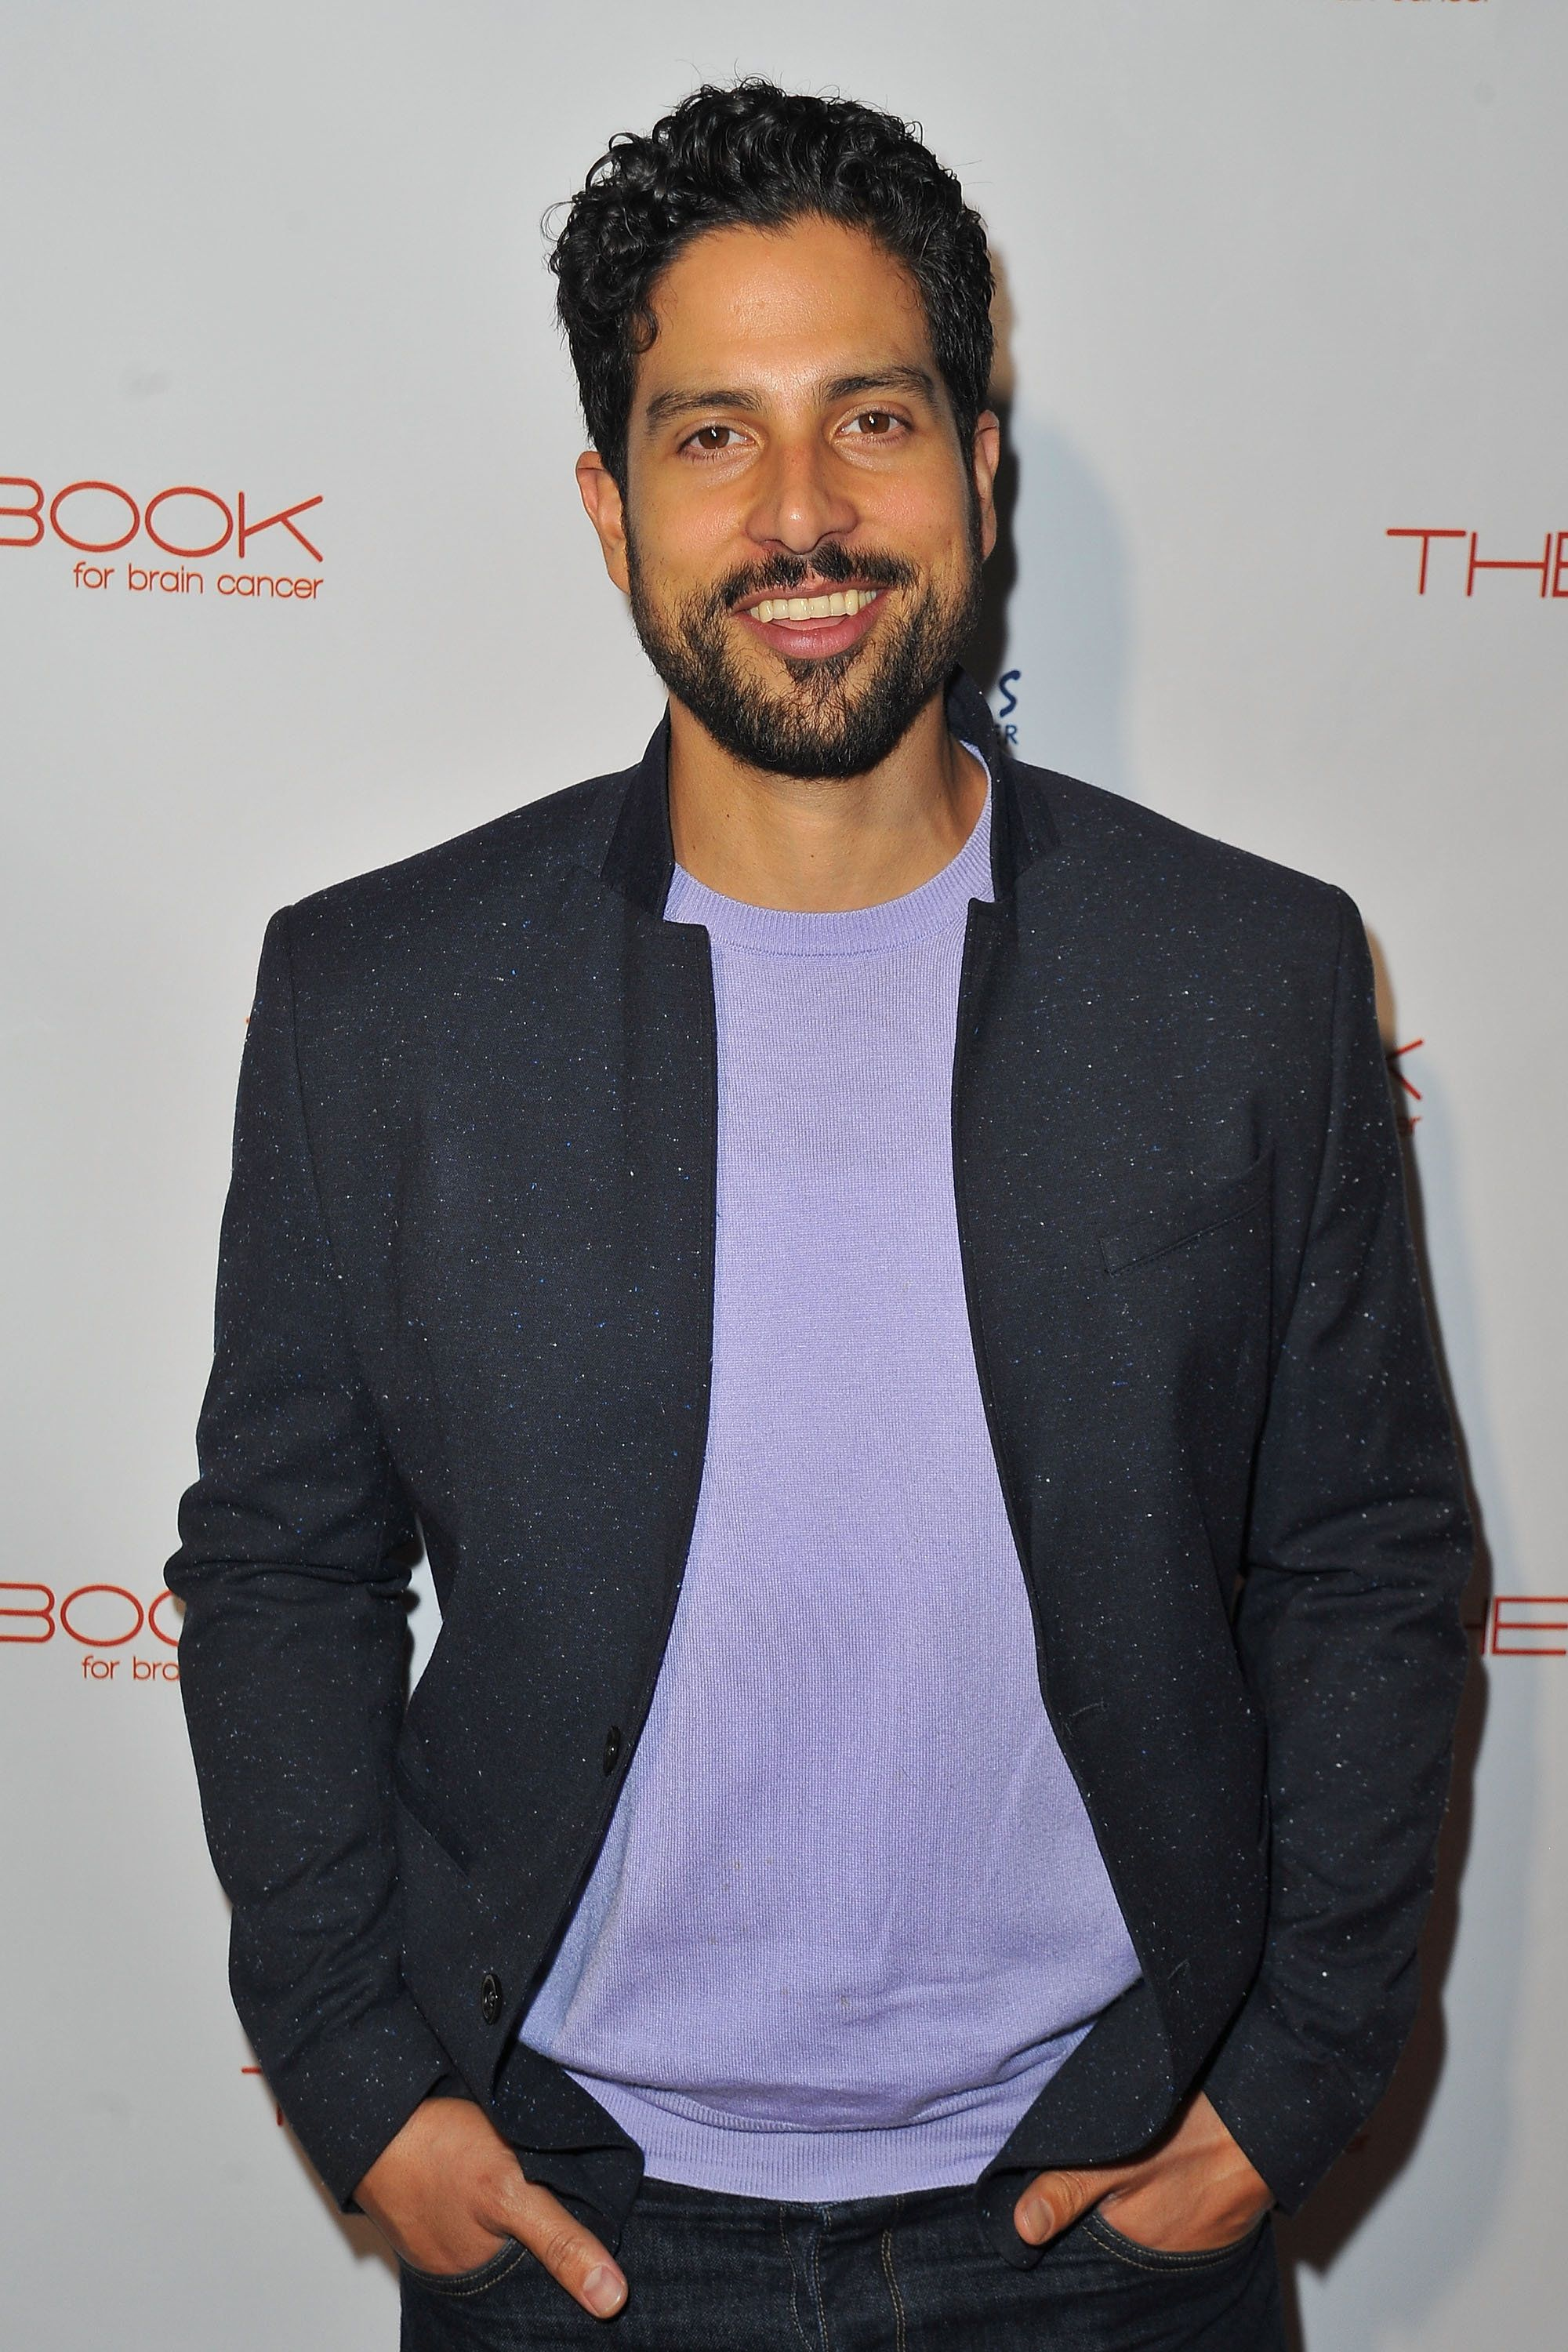 HOLLYWOOD, CA - DECEMBER 03:  Actor Adam Rodriguez arrives at 'The Beauty Book For Brain Cancer' edition 2 launch party at Le Jardin on December 3, 2015 in Hollywood, California.  (Photo by Jerod Harris/WireImage)